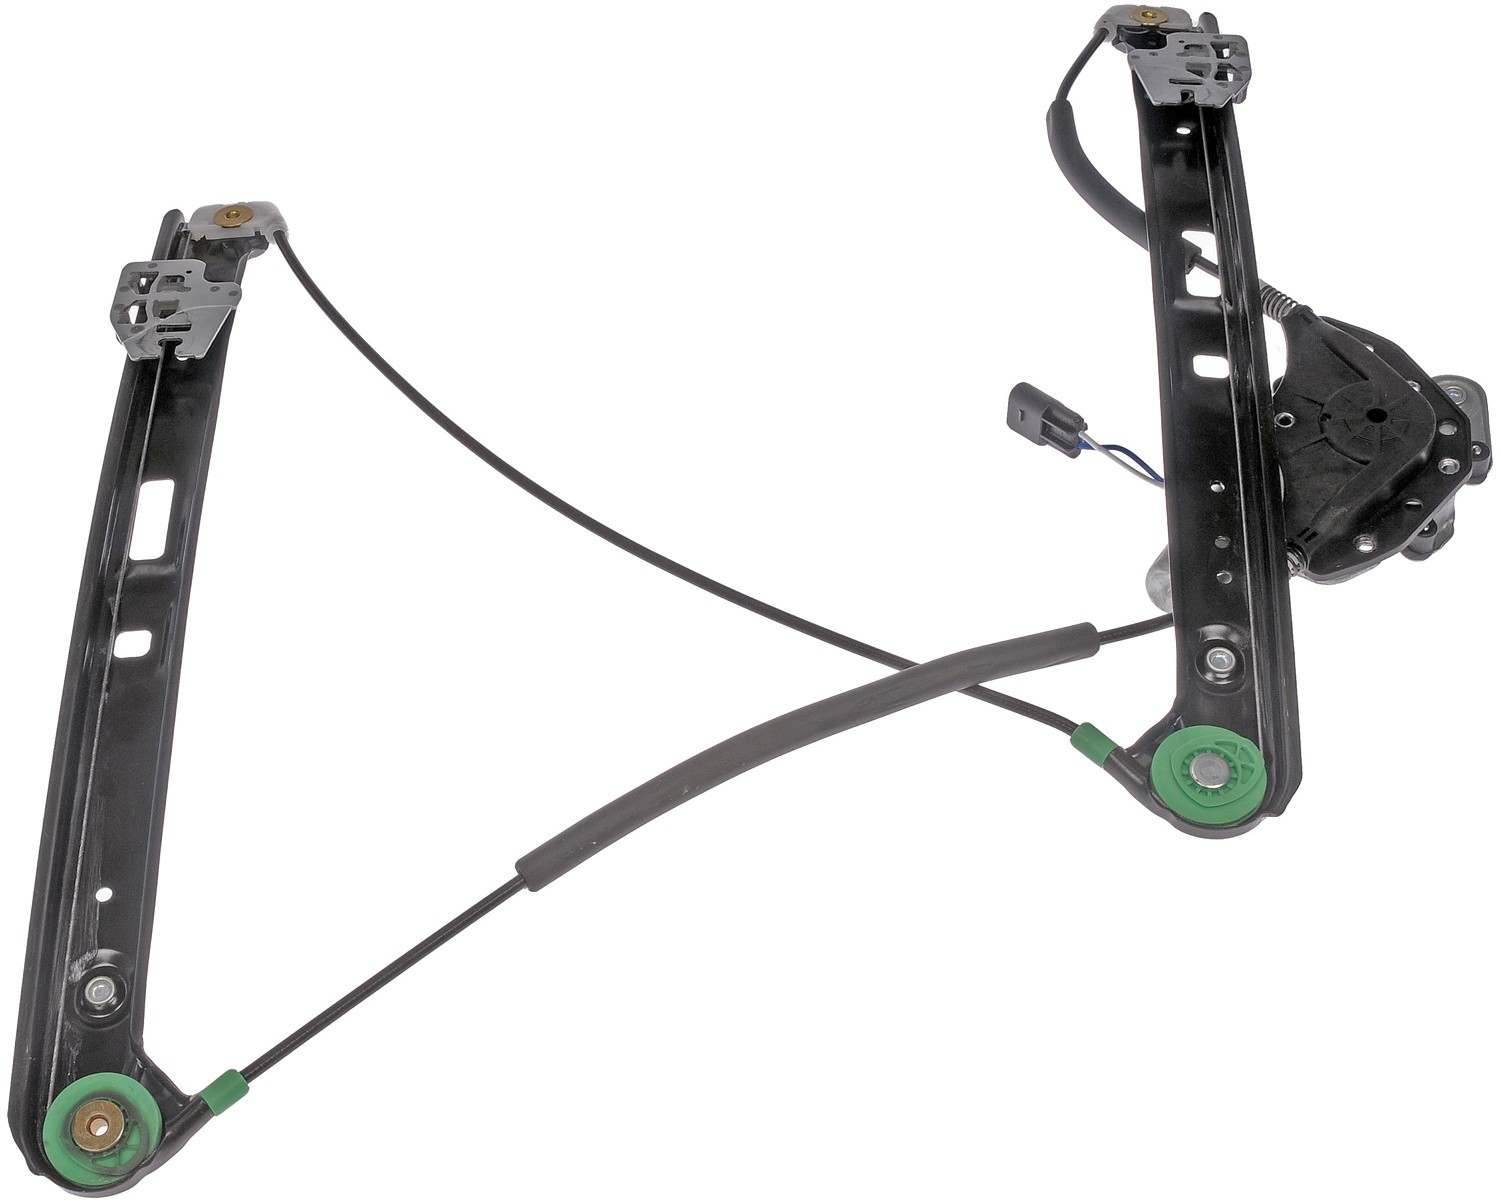 DORMAN OE SOLUTIONS - Power Window Motor and Regulator Assembly (Front Left) - DRE 741-484